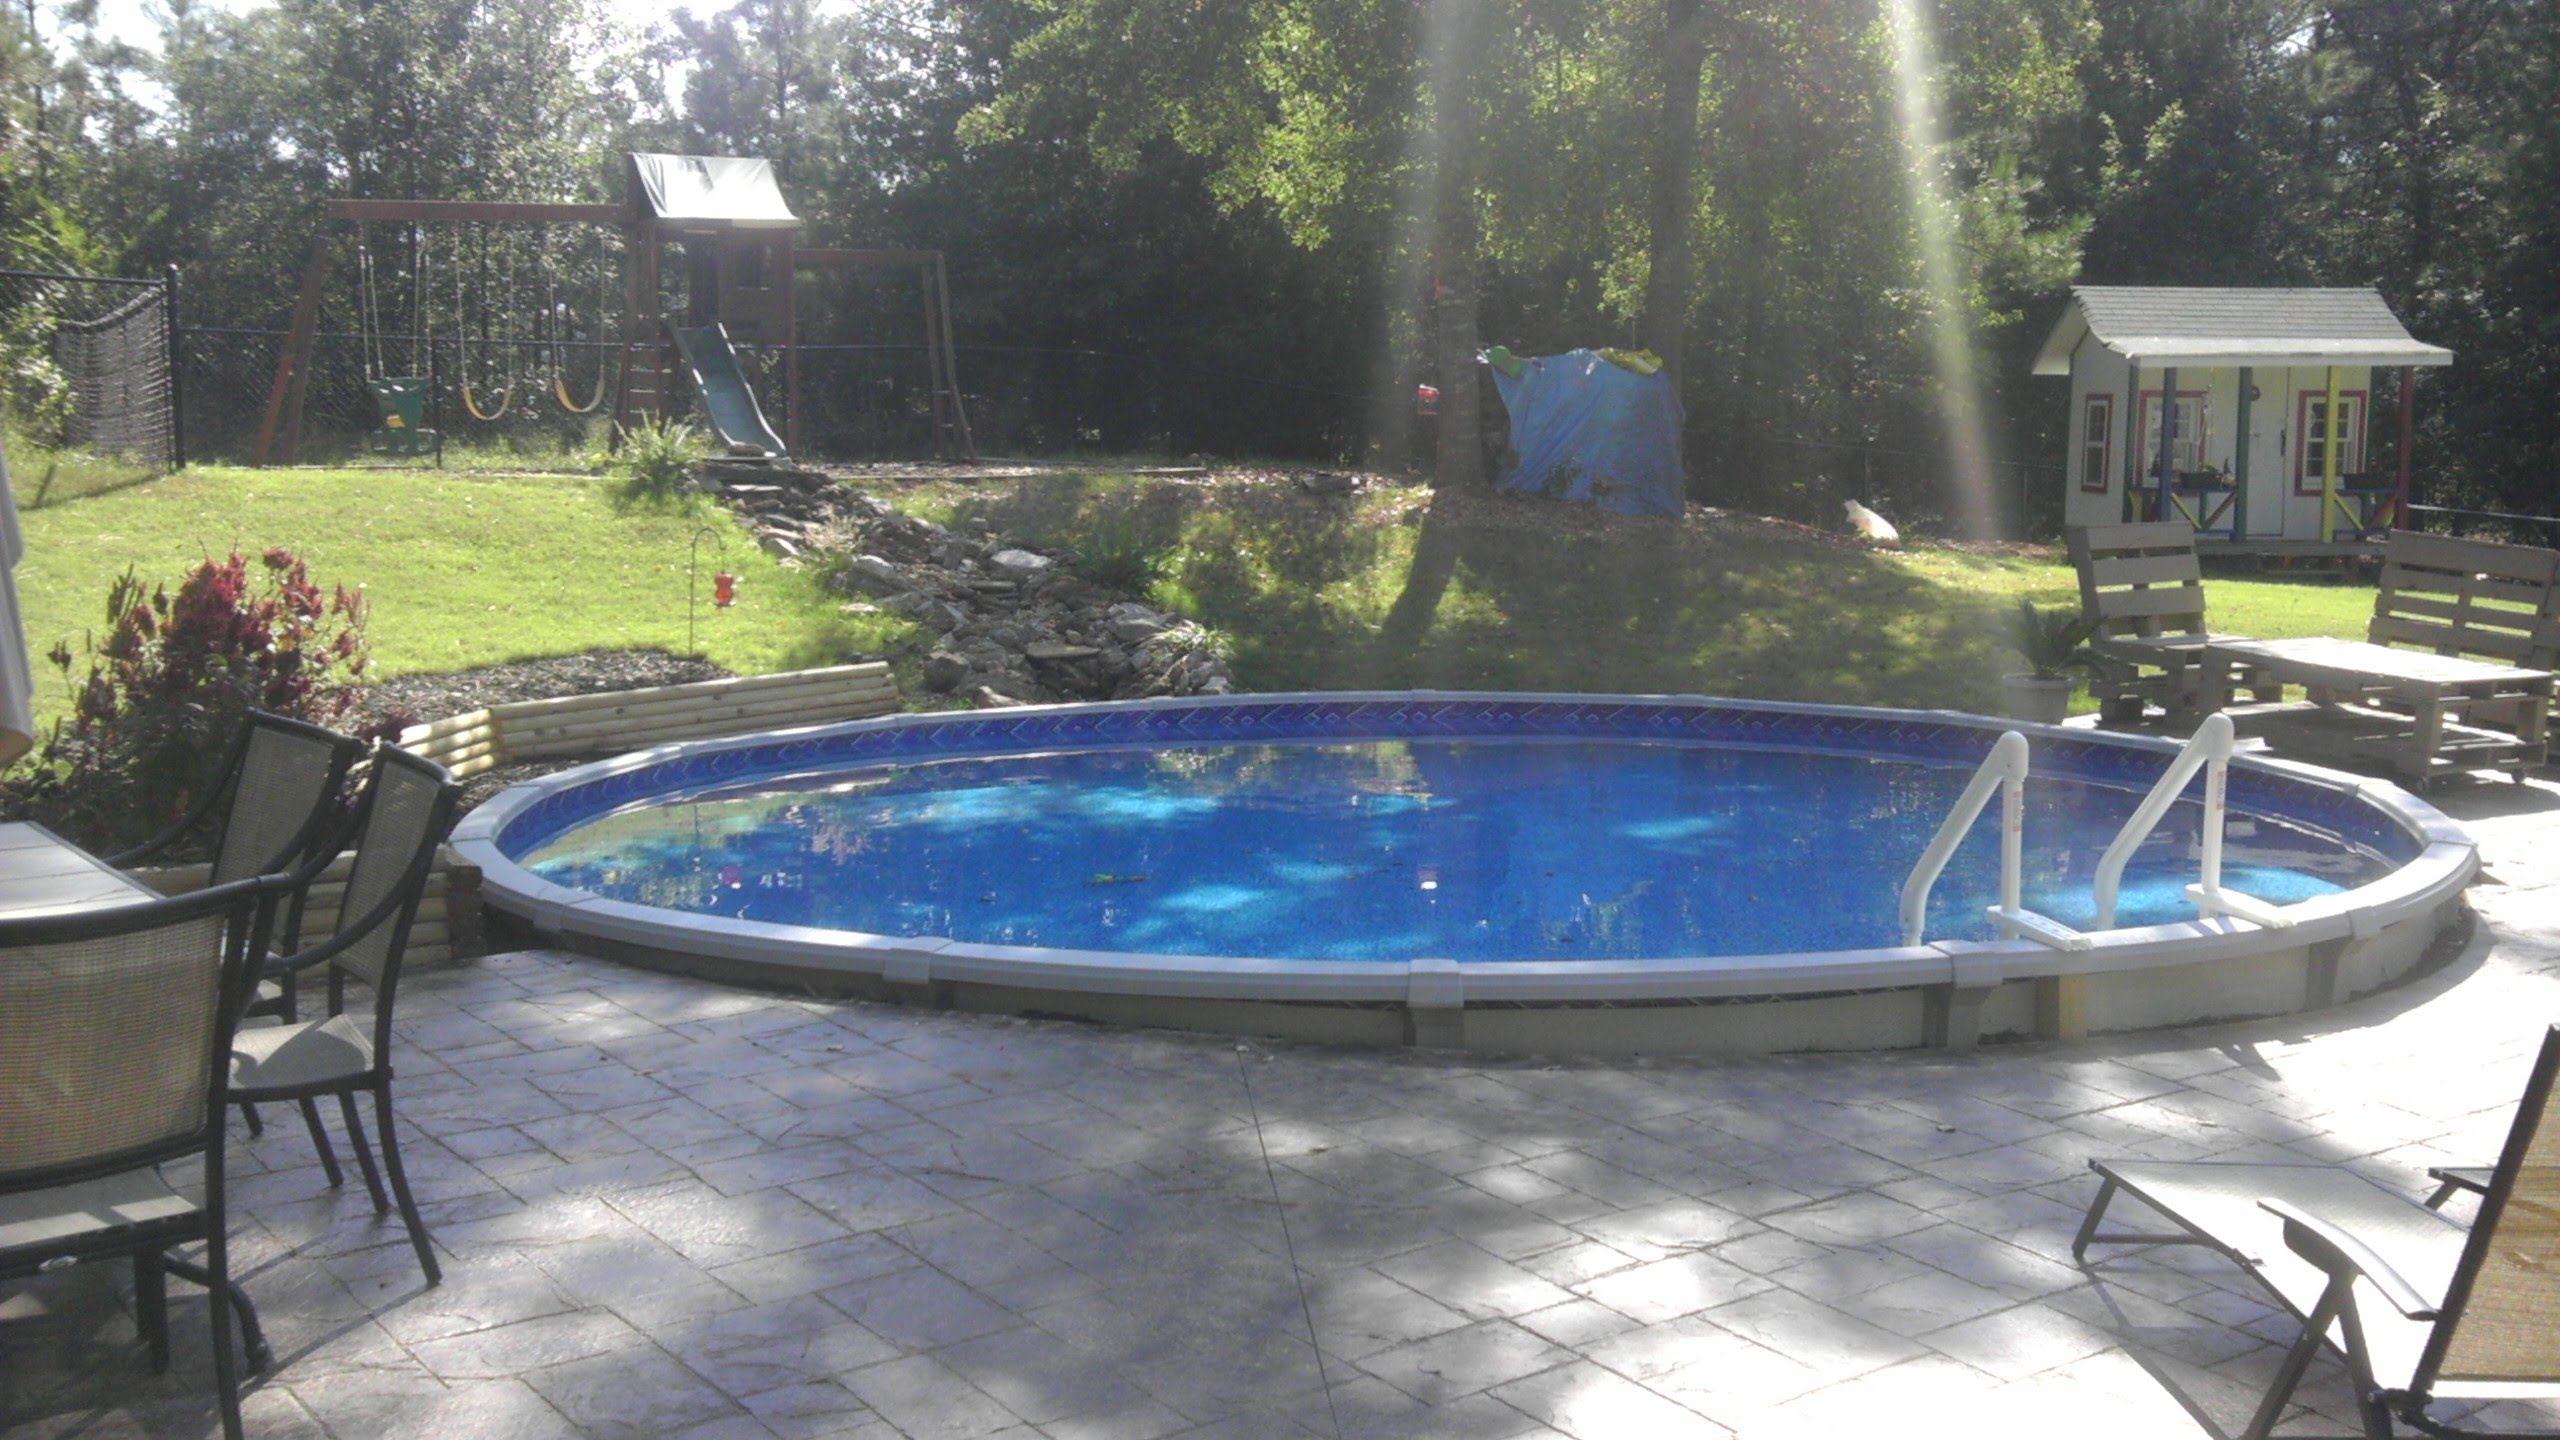 Above Ground Inground Pools | Semi Inground Pool Ideas | Cost of Above Ground Pool